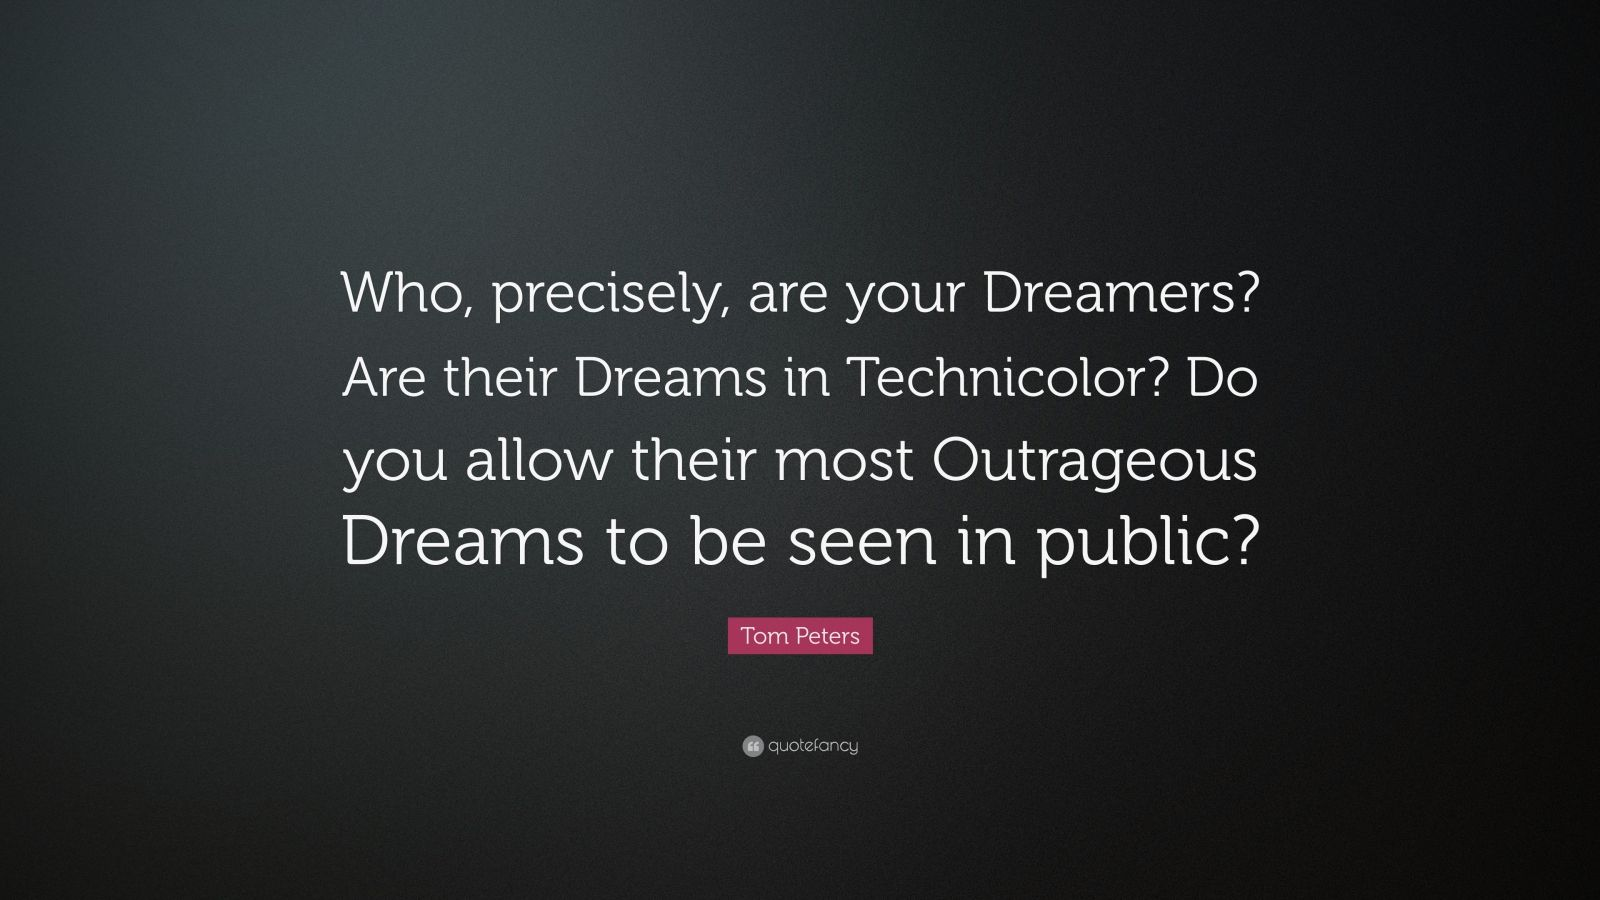 """Tom Peters Quote: """"Who, precisely, are your Dreamers? Are their Dreams in Technicolor? Do you allow their most Outrageous Dreams to be seen in public?"""""""